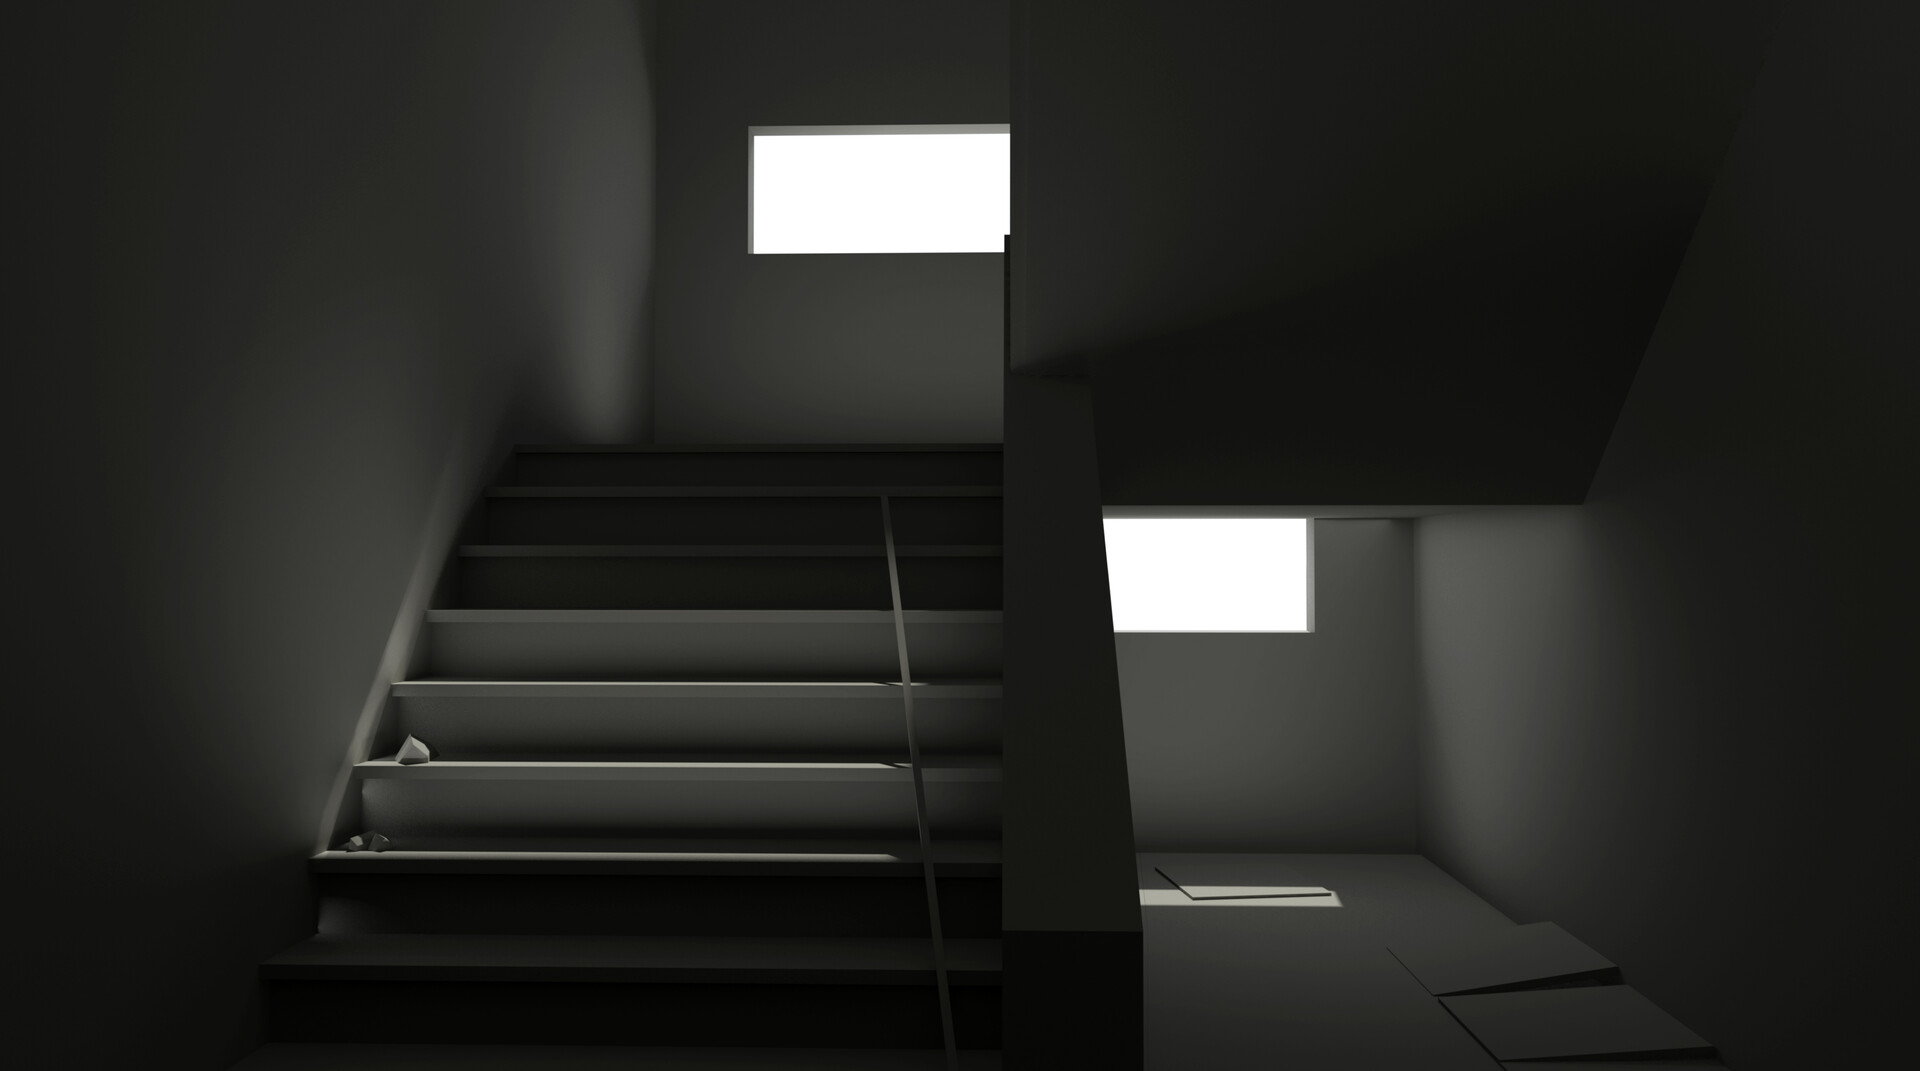 Quick Mental Ray render